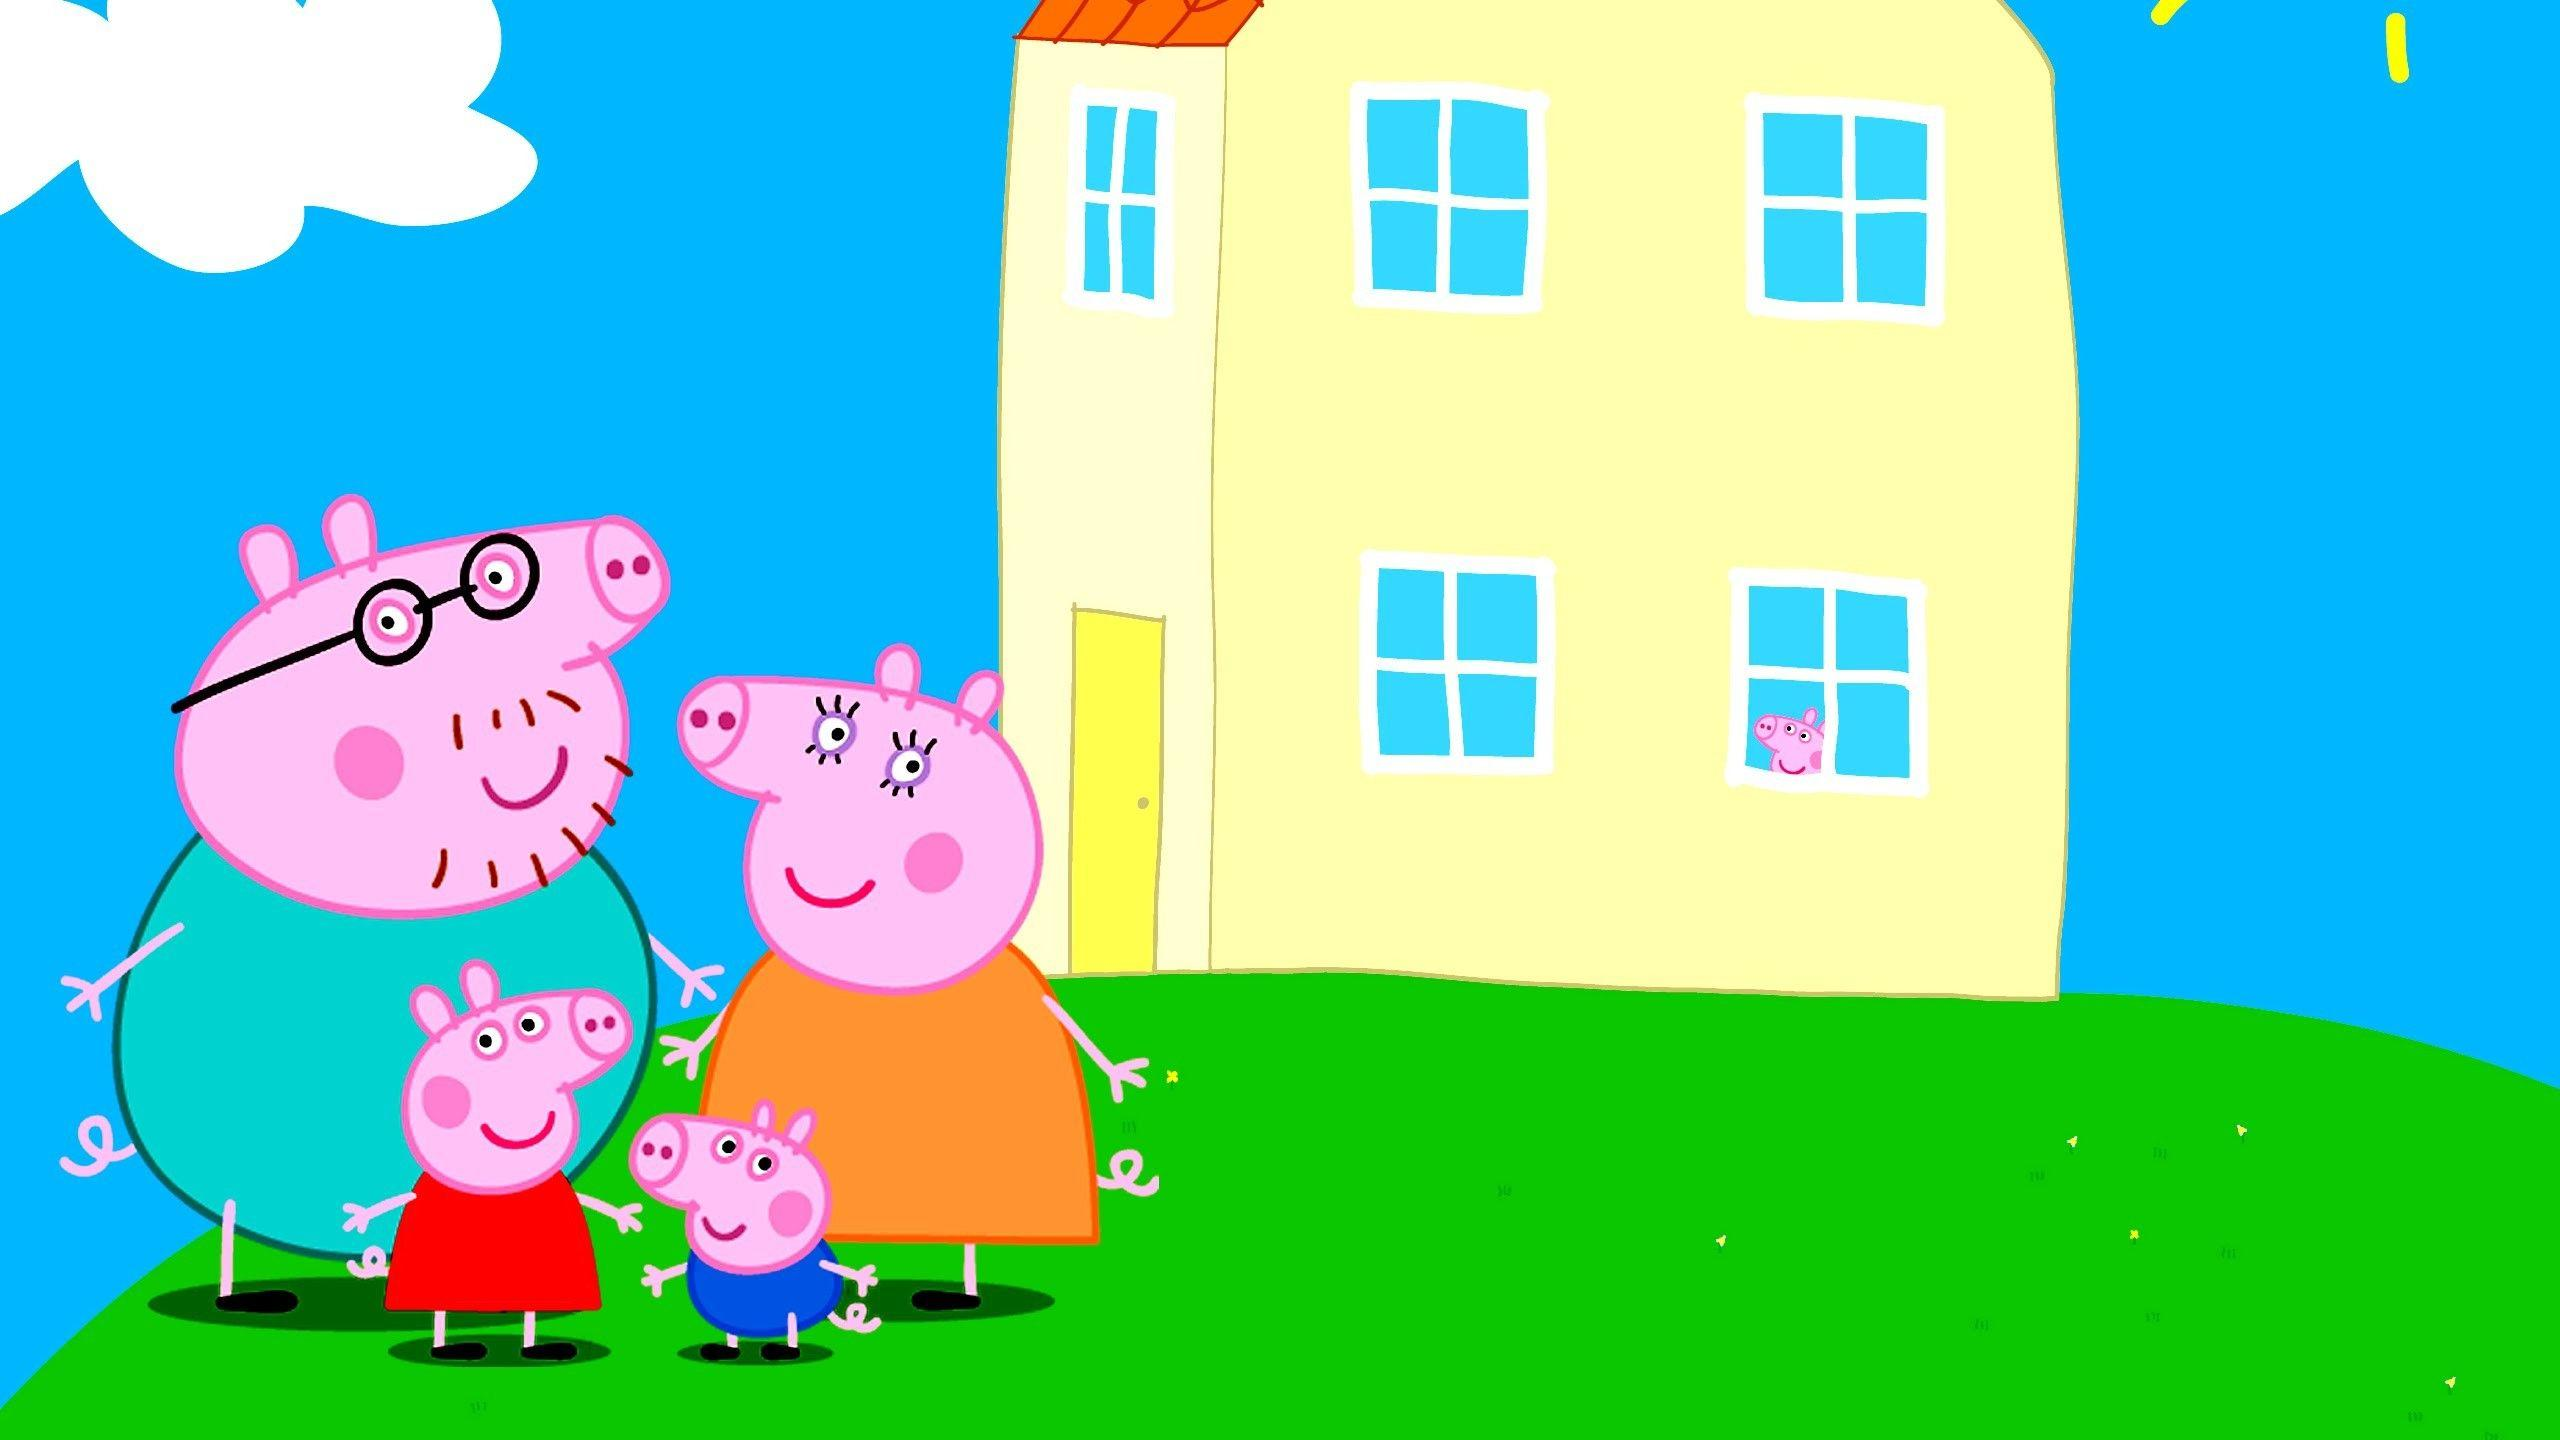 Peppa Pig Wallpapers on MarkInternational.info